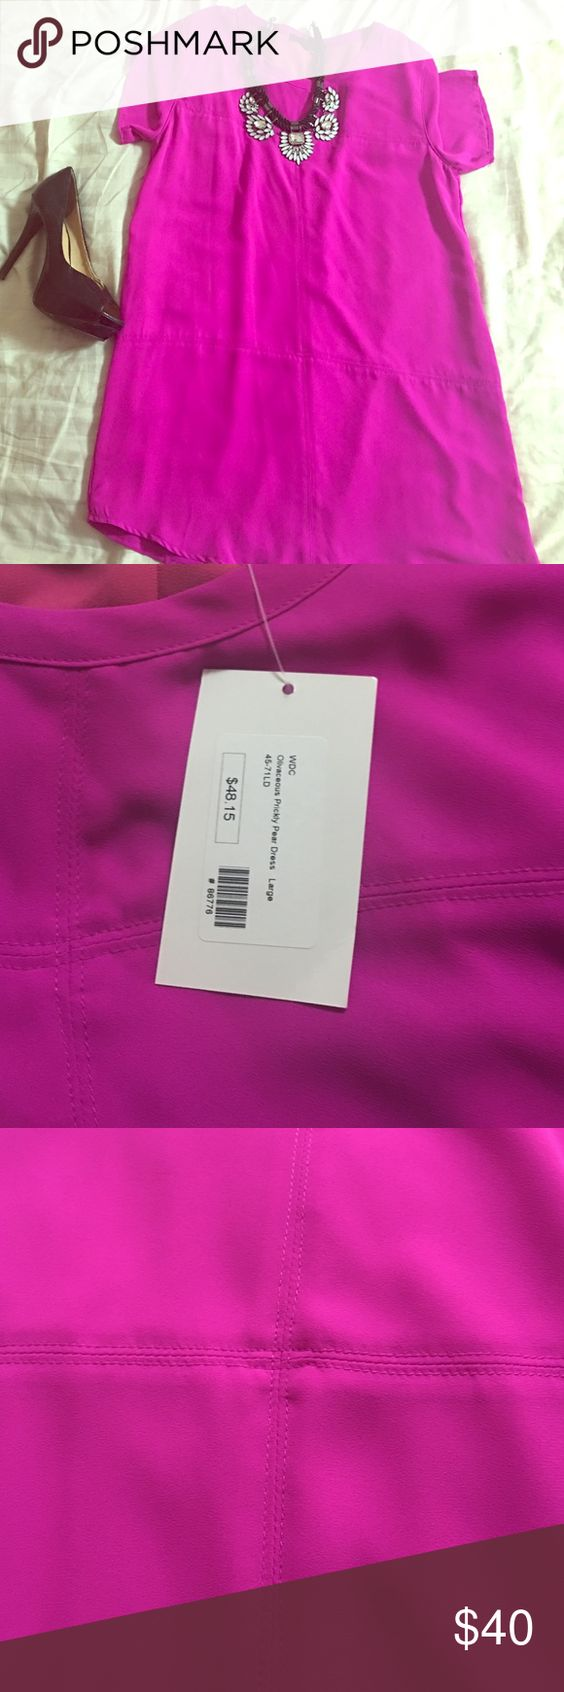 Dress A beautiful dress true magenta in color, shift style, pull over. About 33 inch long. Really beautiful dress that could be added to your wardrobe. It fit to small, because my hips don't lie Dresses Mini